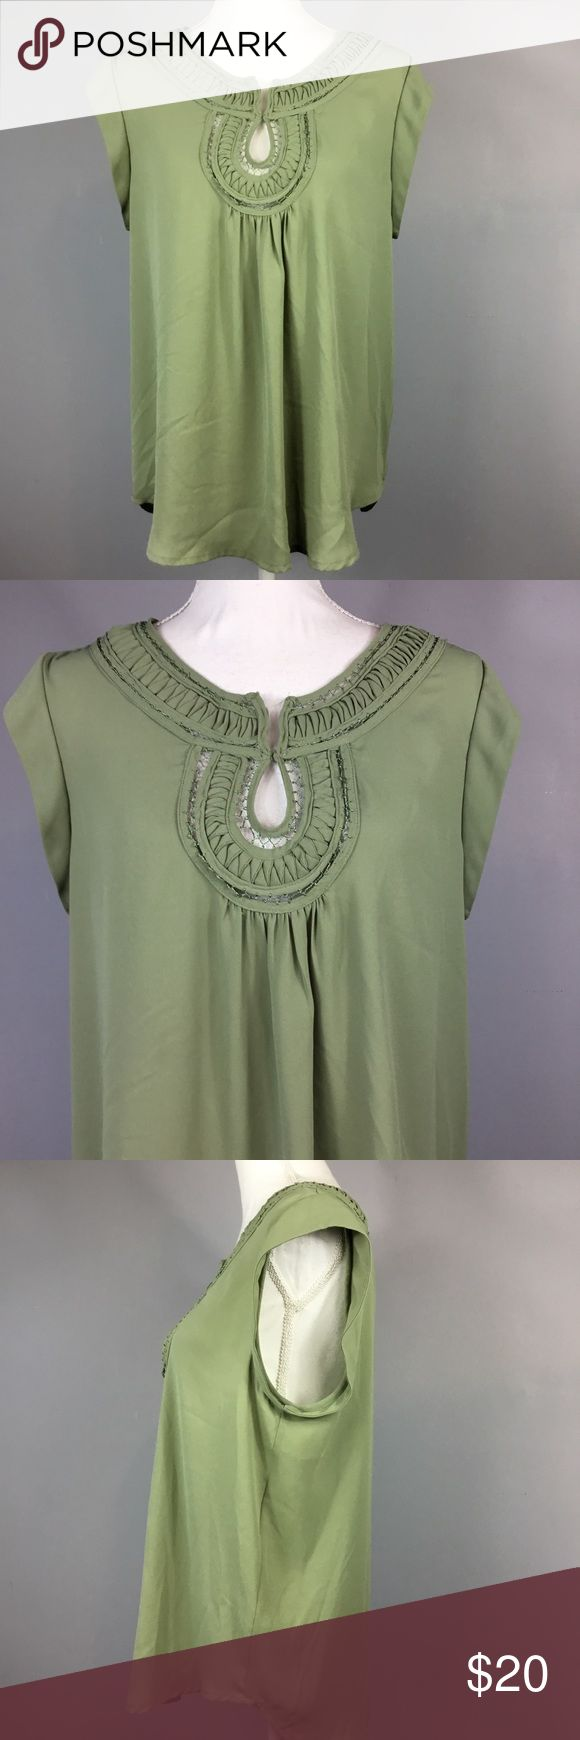 "Daniel Rainn Olive Green Short Sleeve Top Medium Daniel Rainn Olive Green Short Sleeve Blouse Womens Size Medium Casual   Measurements are laying flat 	•	Underarm to underarm 20"" 	•	Length 24"" from shoulder to hem Please check out my other items for more sizes and styles! Daniel Rainn Tops Blouses"